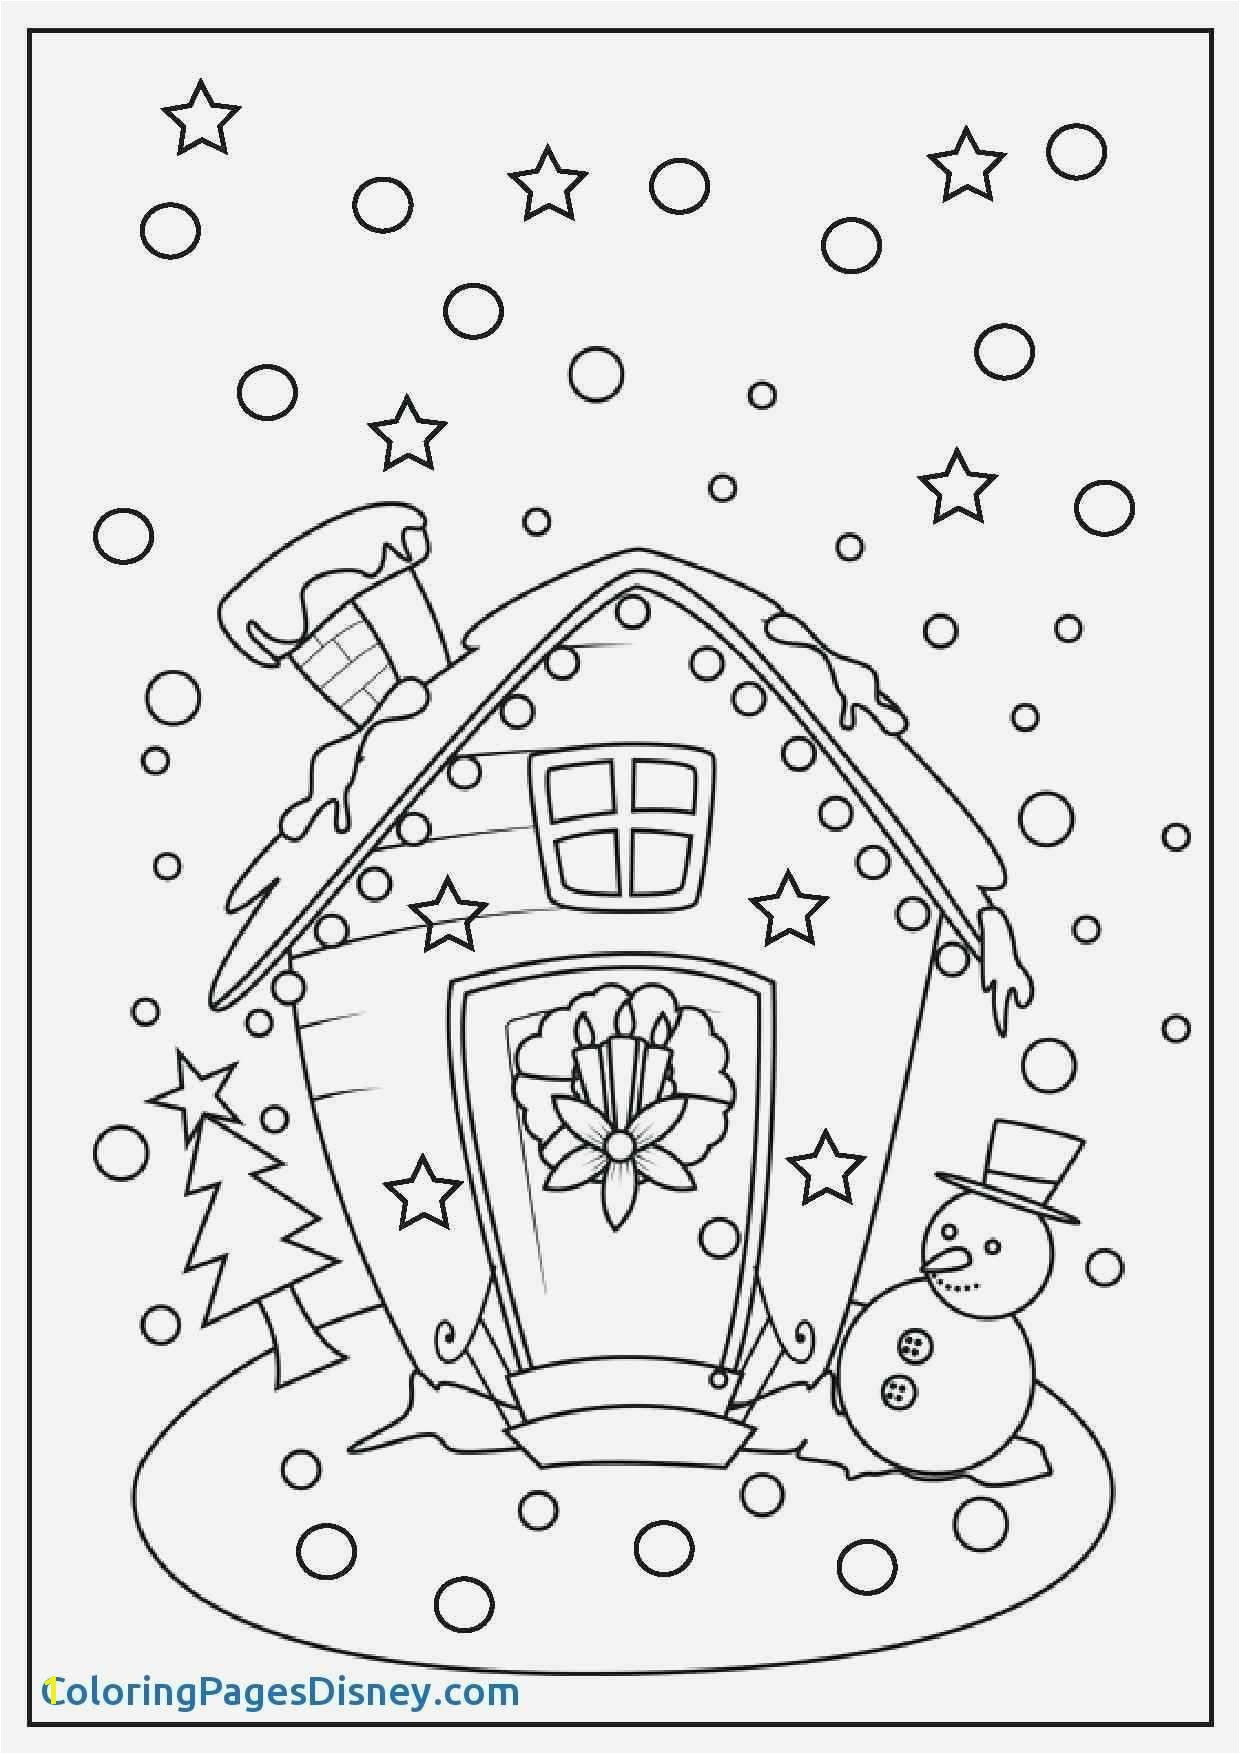 Christmas Coloring Pages Disney Princess With Printable Zabelyesayan Com